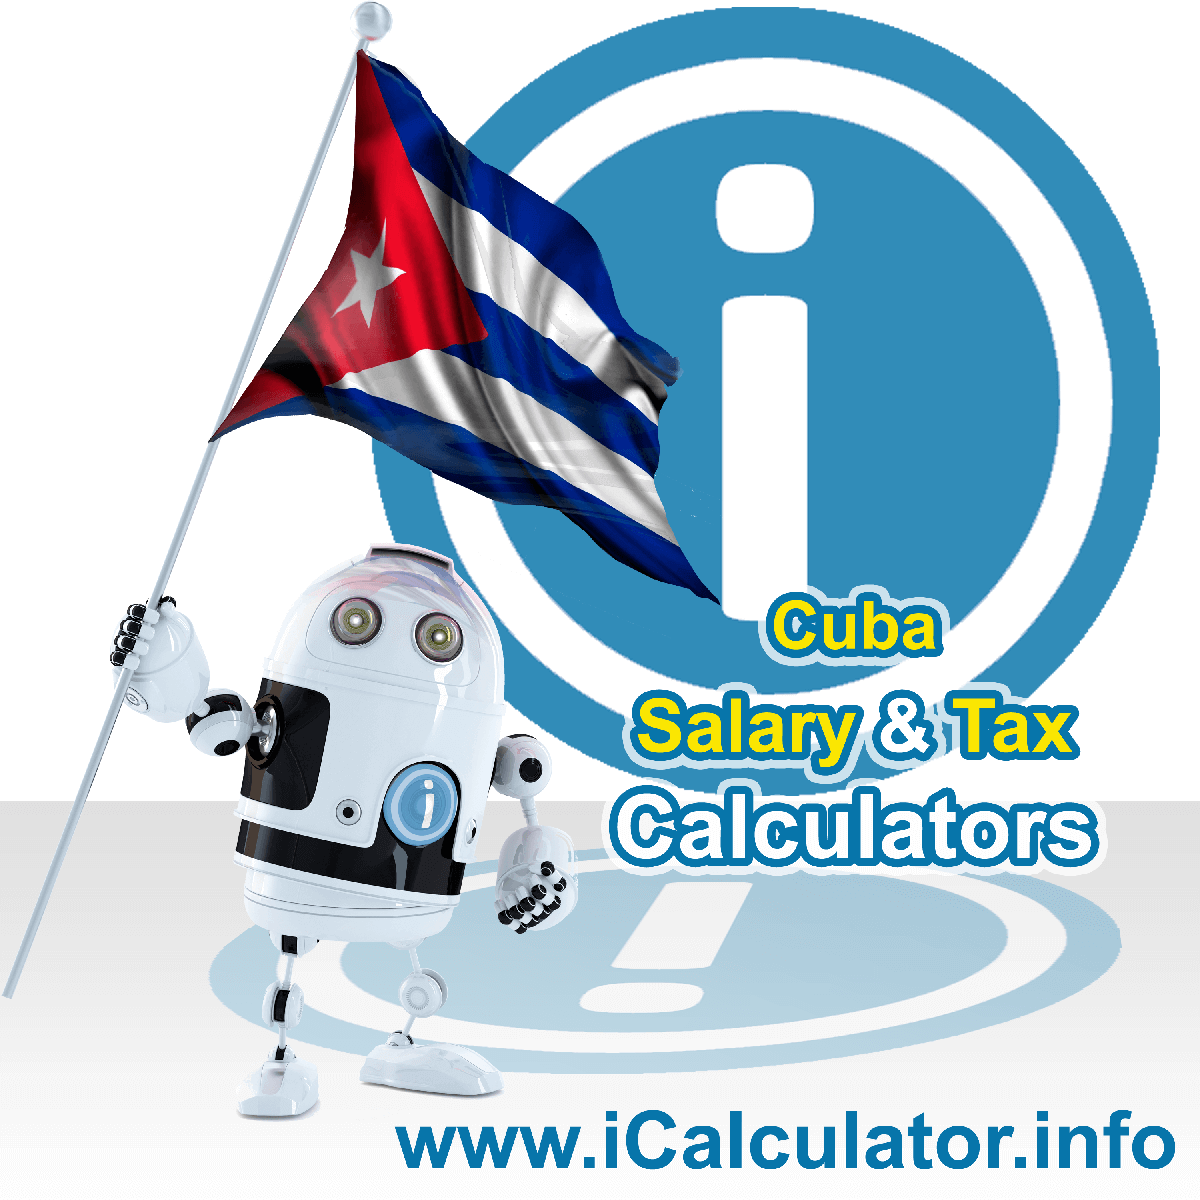 Cuba Wage Calculator. This image shows the Cuba flag and information relating to the tax formula for the Cuba Tax Calculator